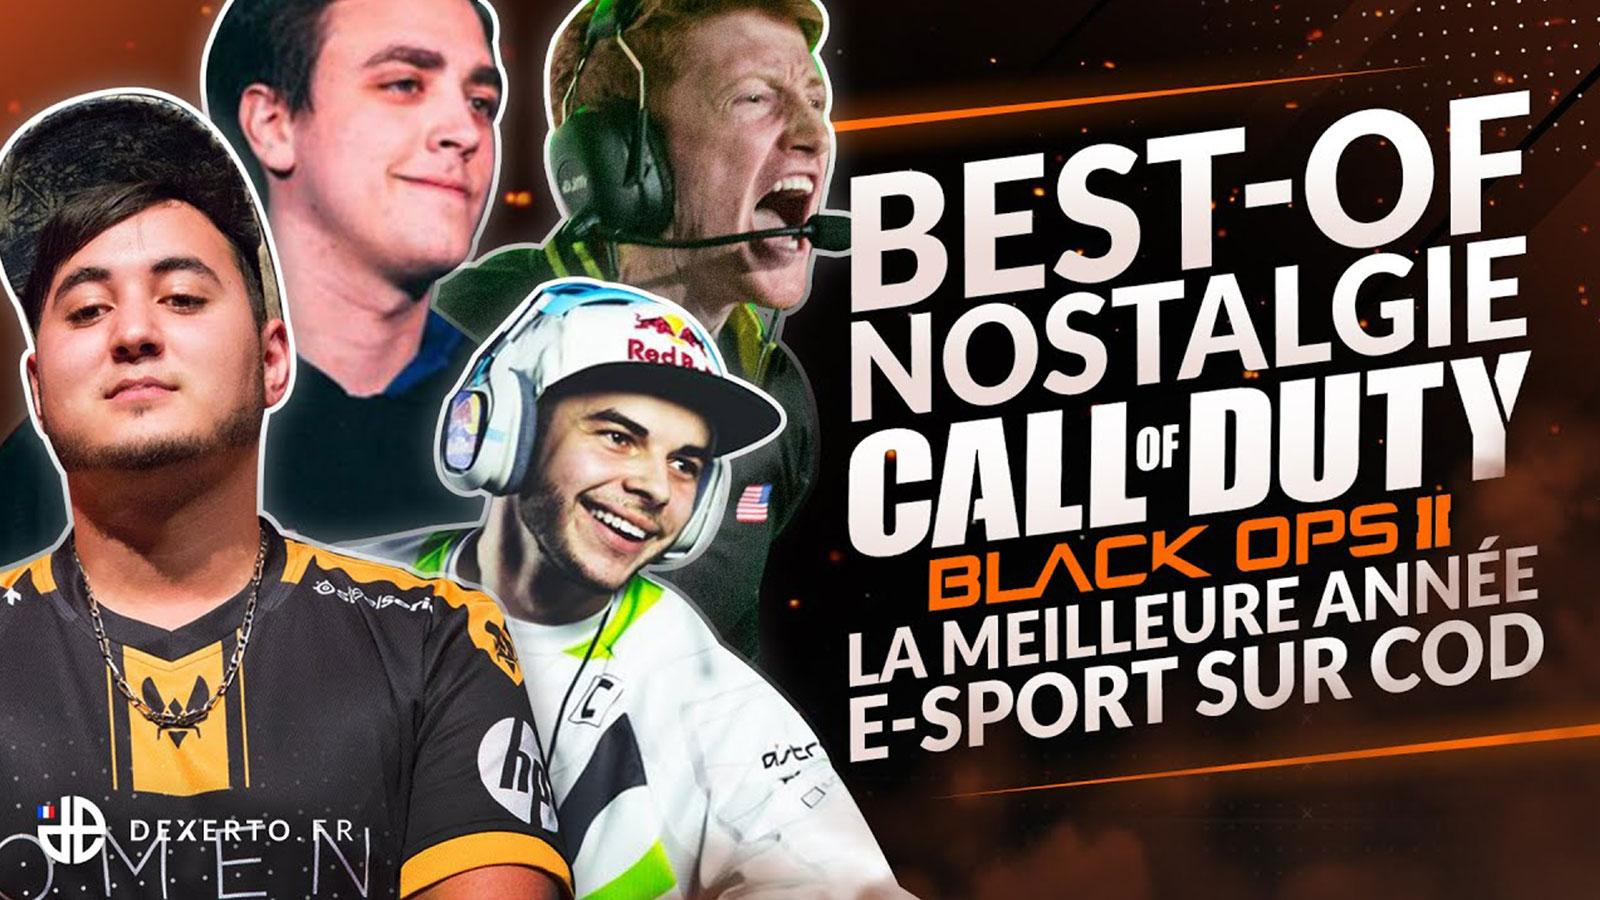 Best of Black Ops 2 Call of Duty